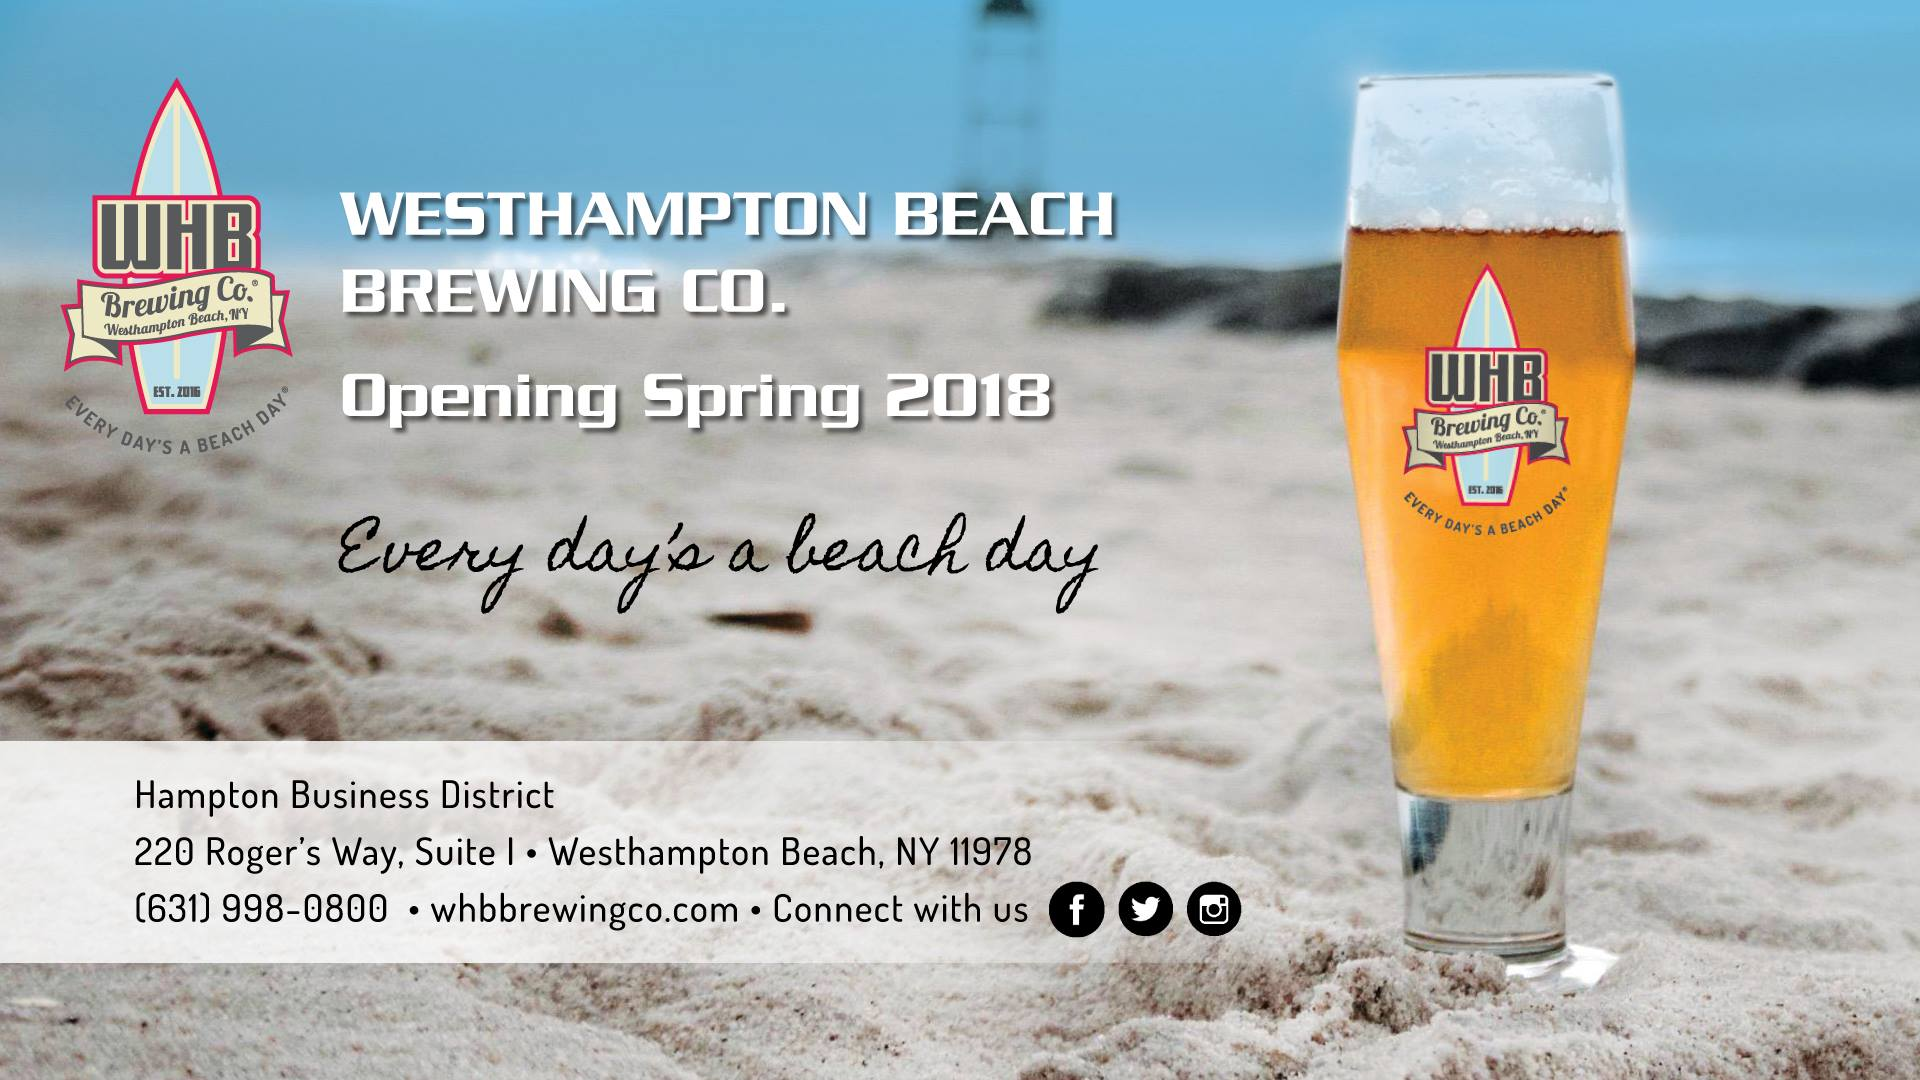 Westhampton Beach Brewing Co.